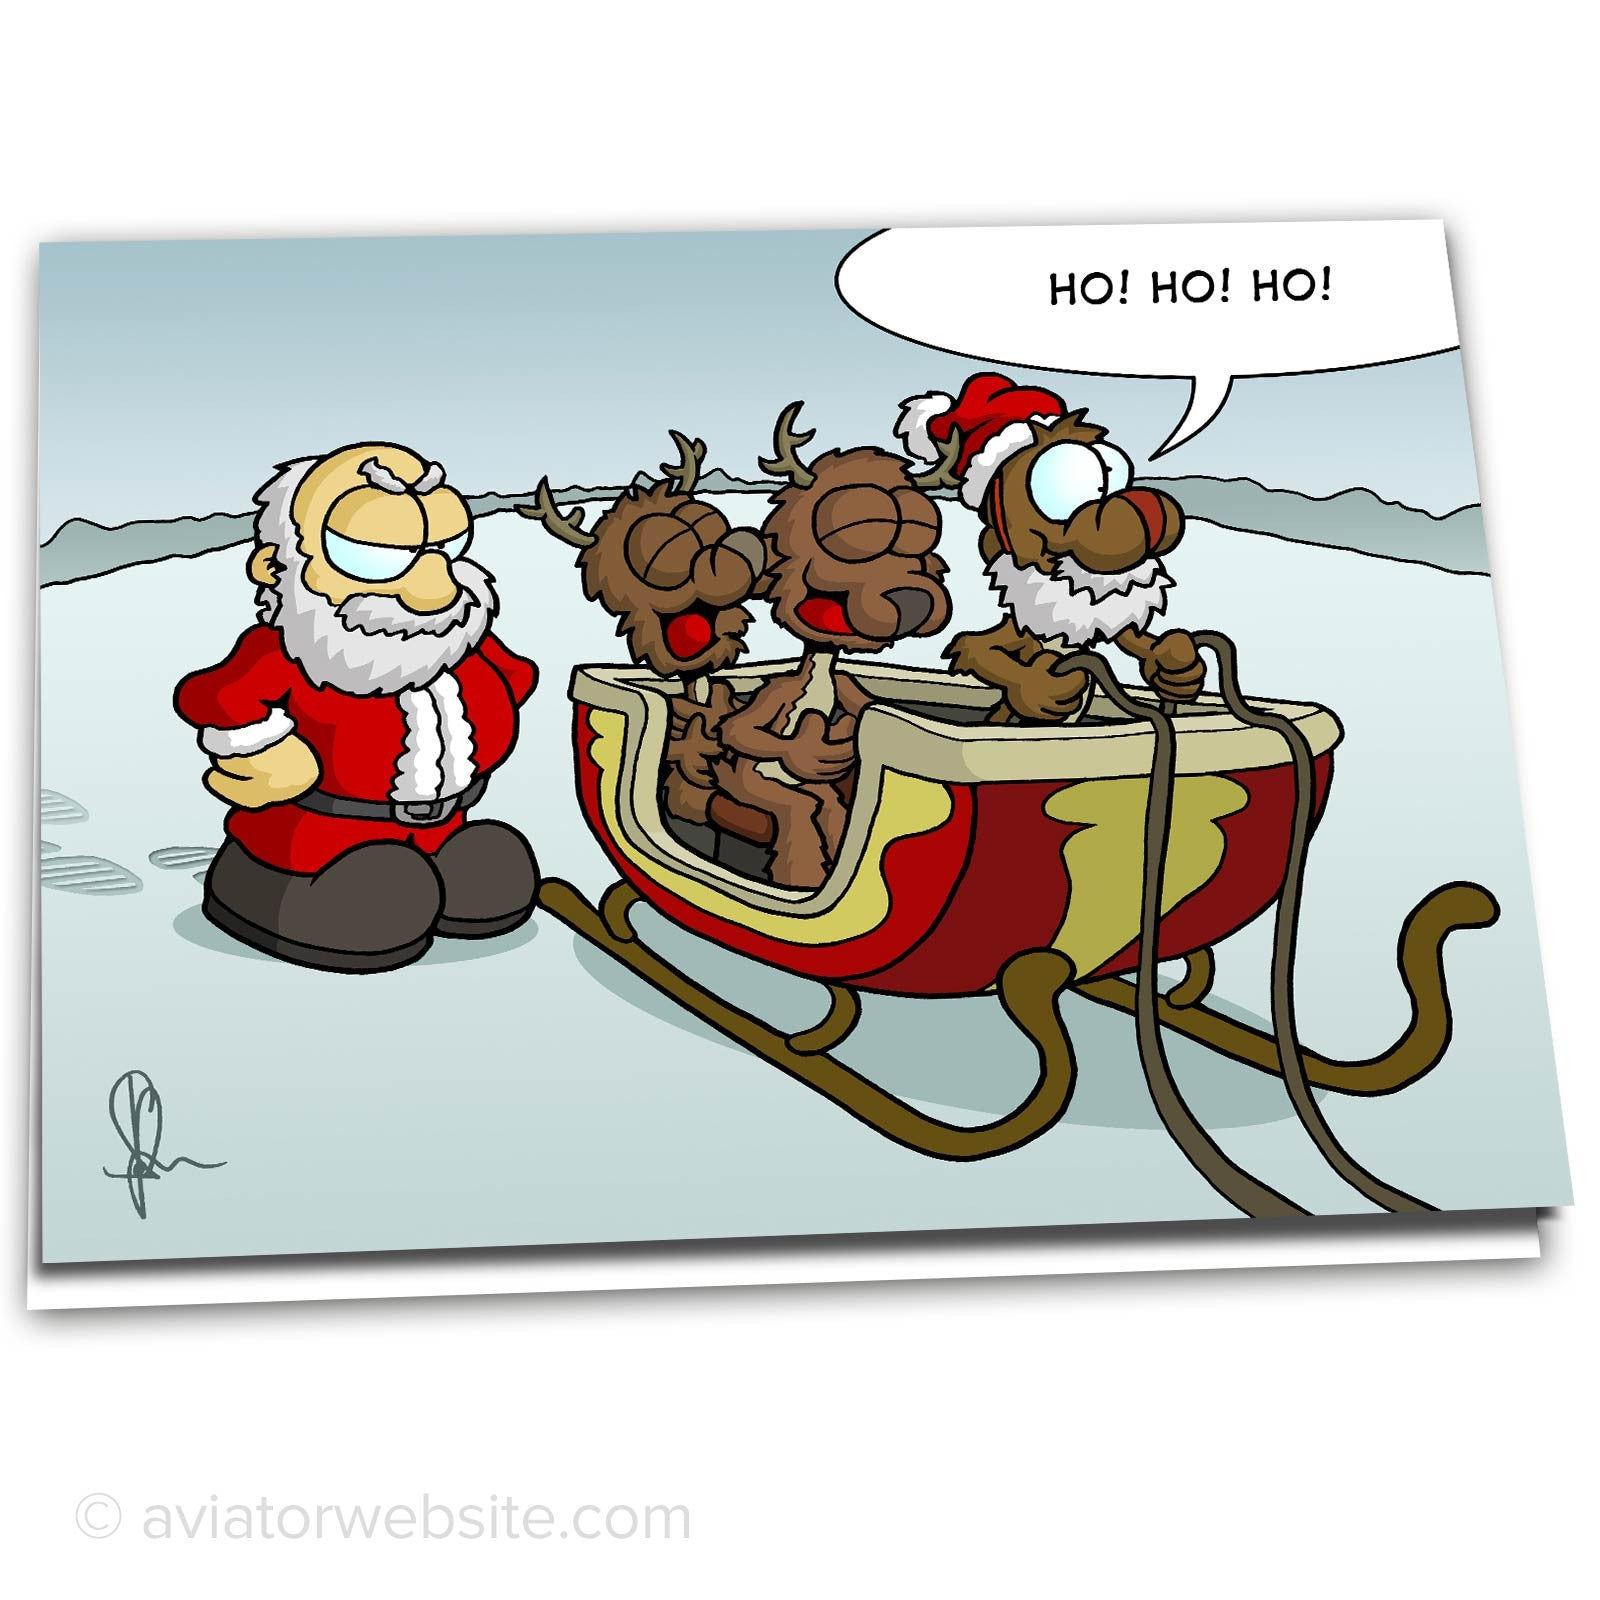 Funny Christmas Images.Funny Christmas Card Reindeer Mocking Santa 10 Cards